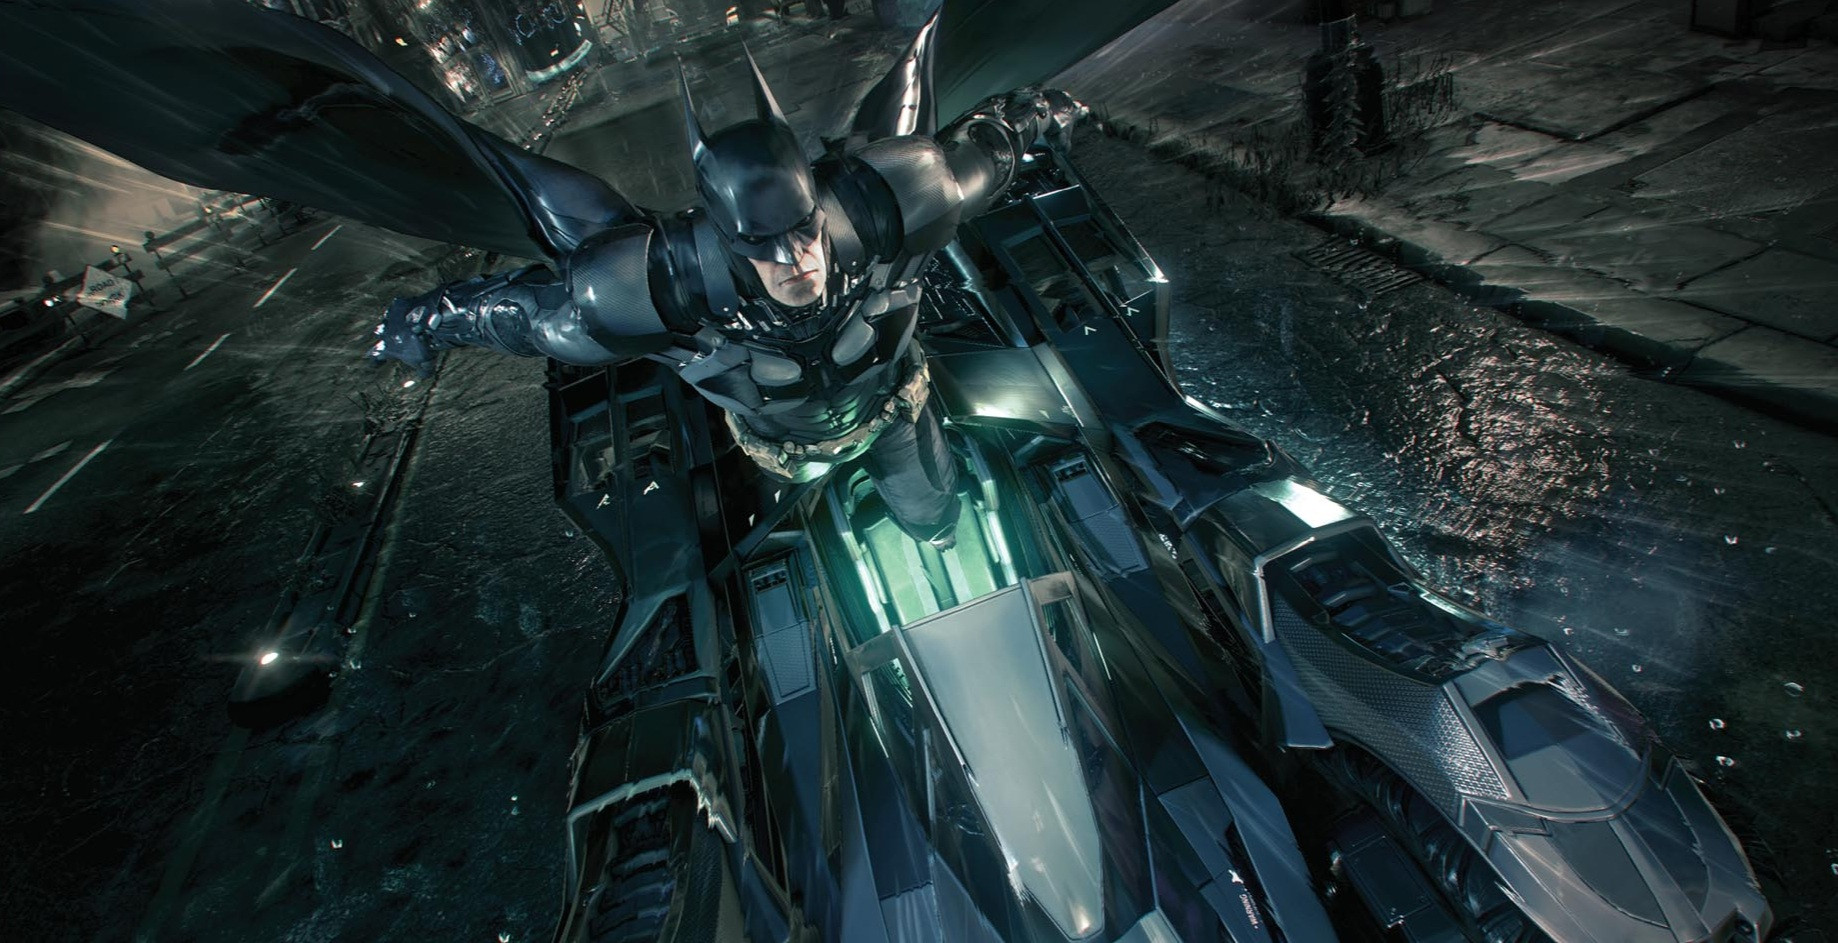 """Batman: Arkham Knight"" PC Port Interim Patch Coming August - Hopes the Fixes Will Address Issues"